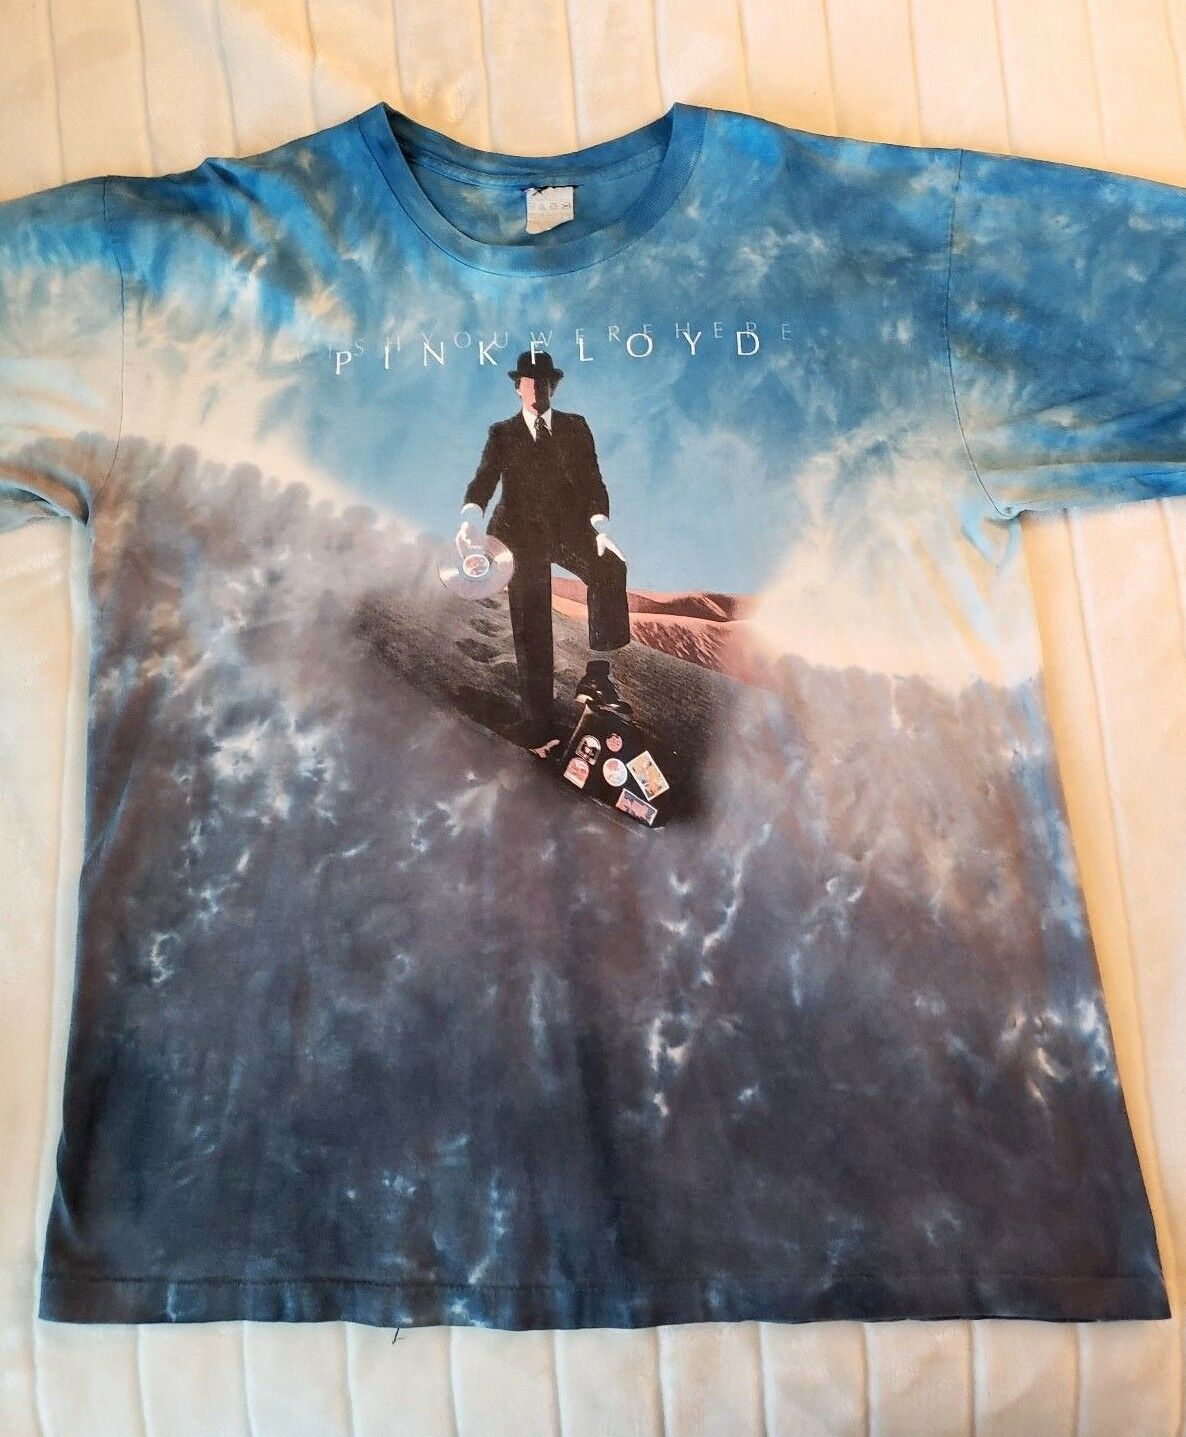 Pink Floyd Wish You Were Here T-Shirt Syd Barrett Gilmour Waters - Rare